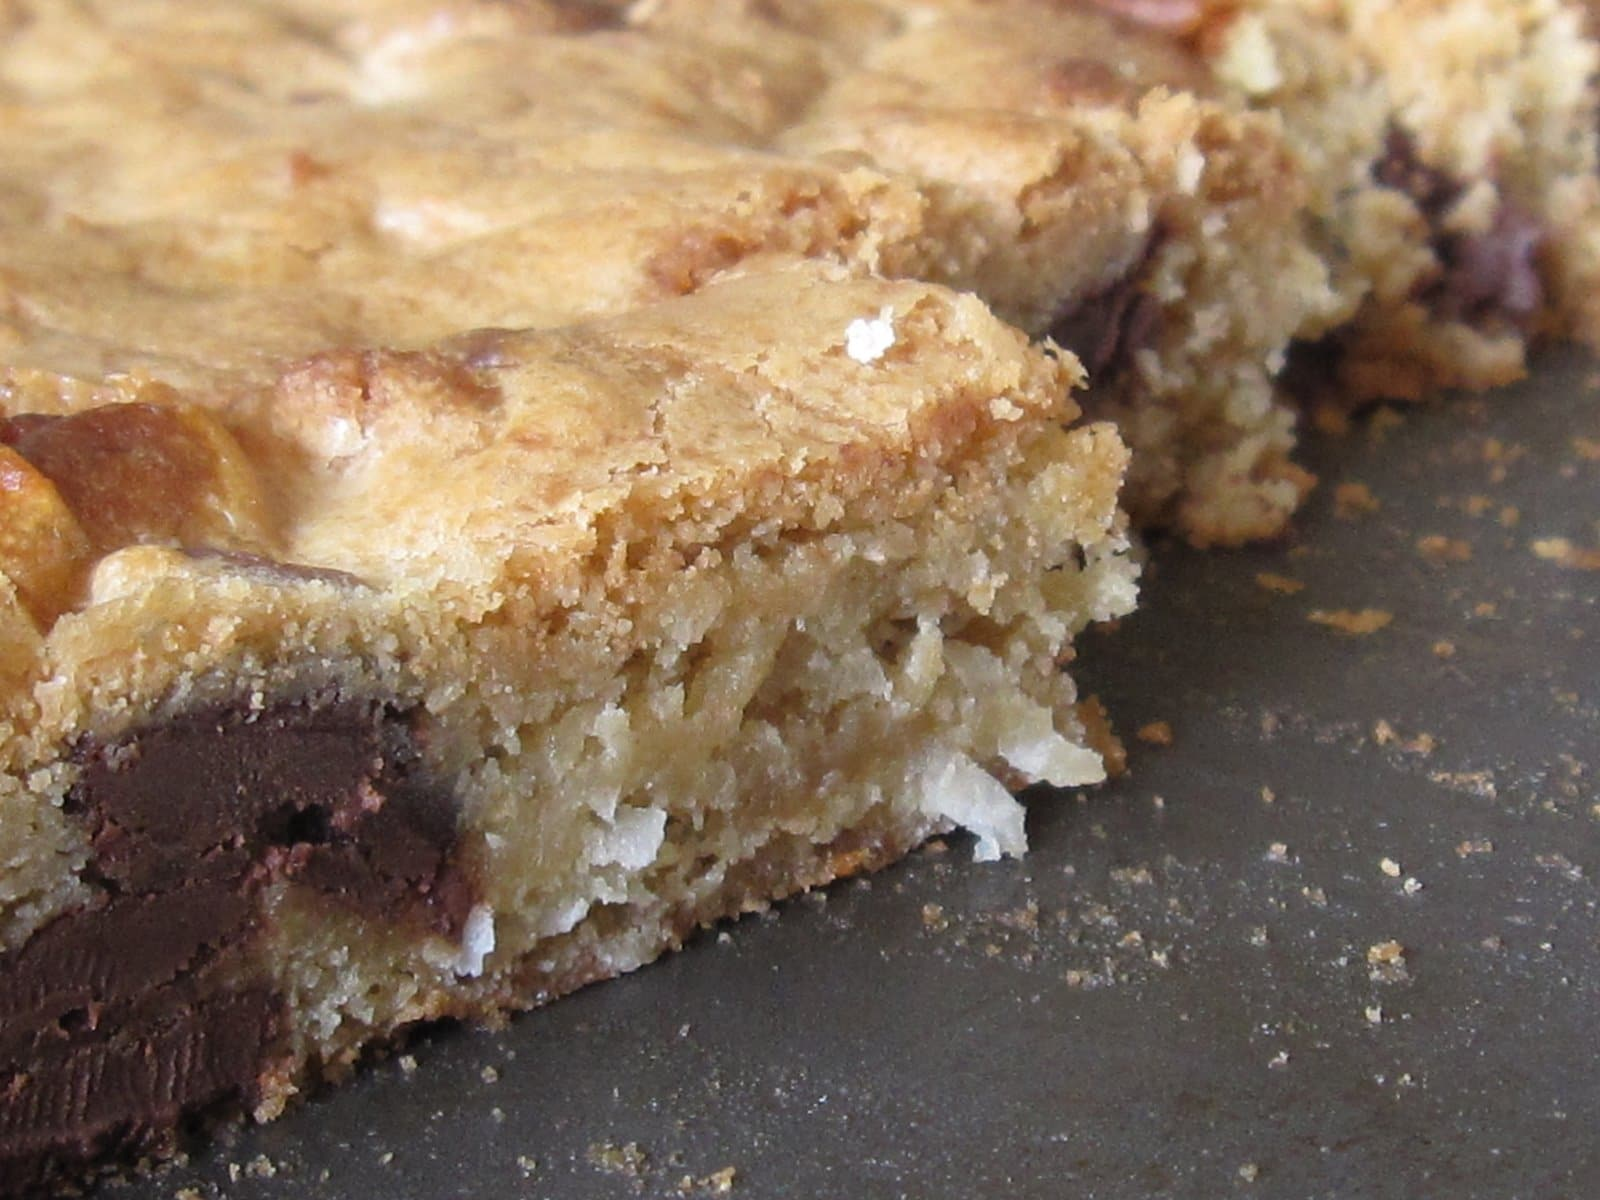 Close-up of a chocolate-chip blondie